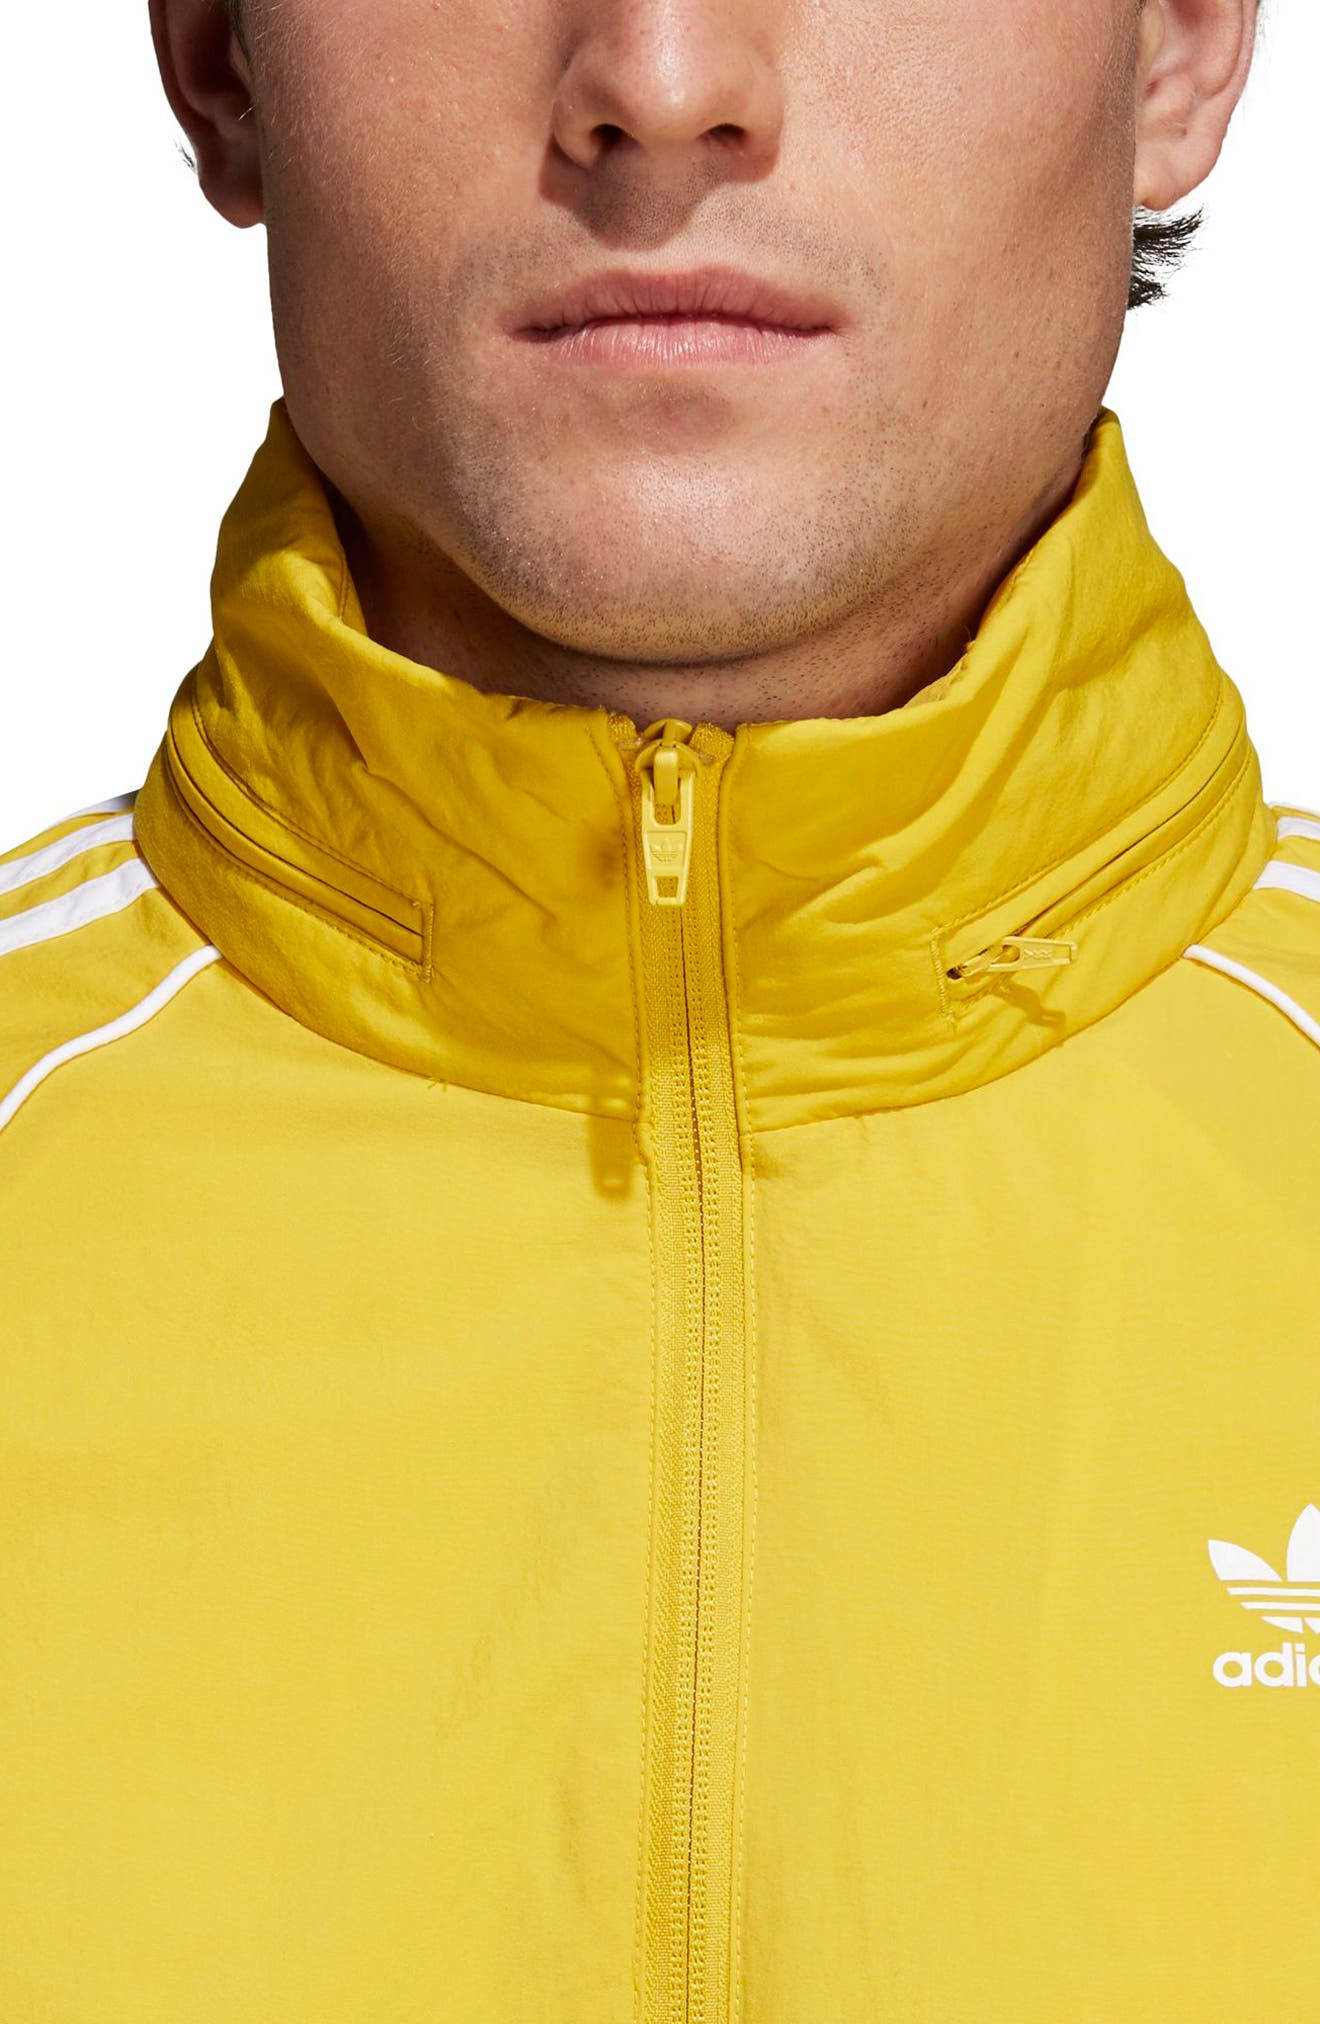 SST Windbreaker,                             Alternate thumbnail 4, color,                             Tribe Yellow